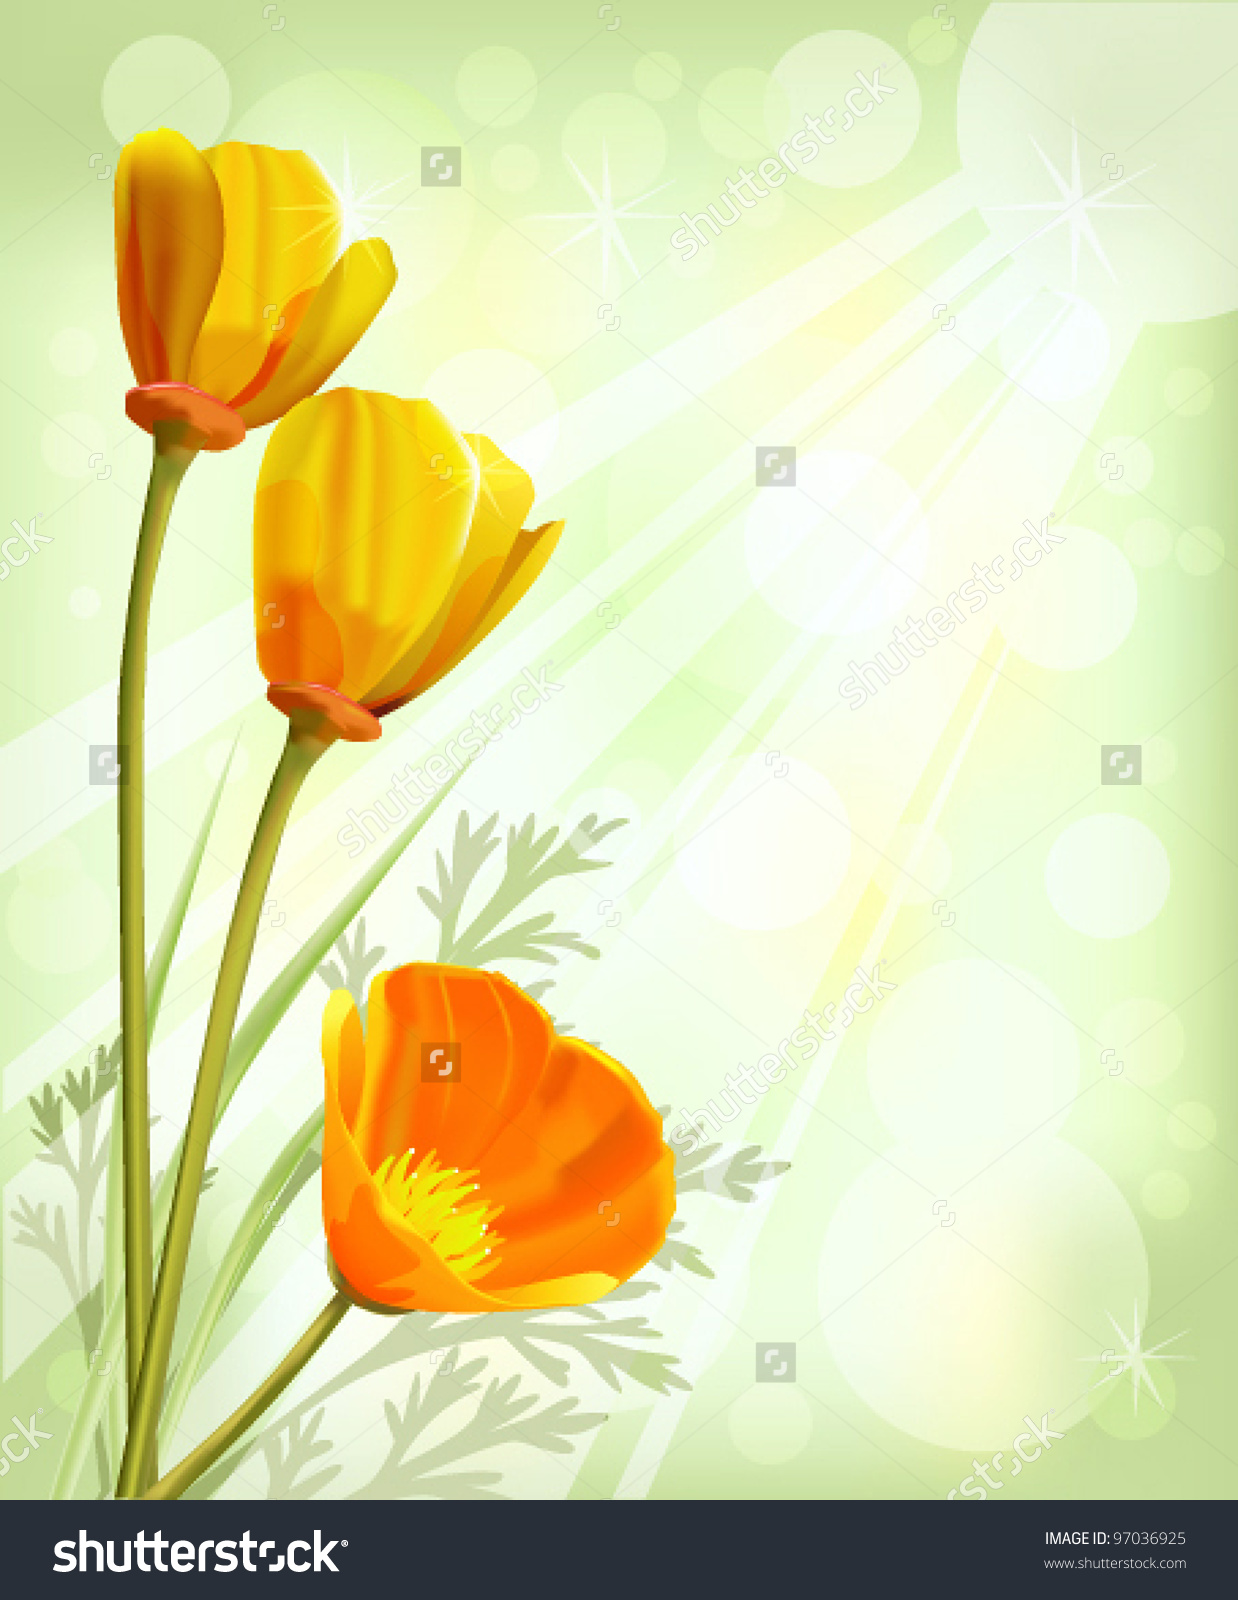 California Poppy Eschscholzia Californica Stock Vector 97036925.